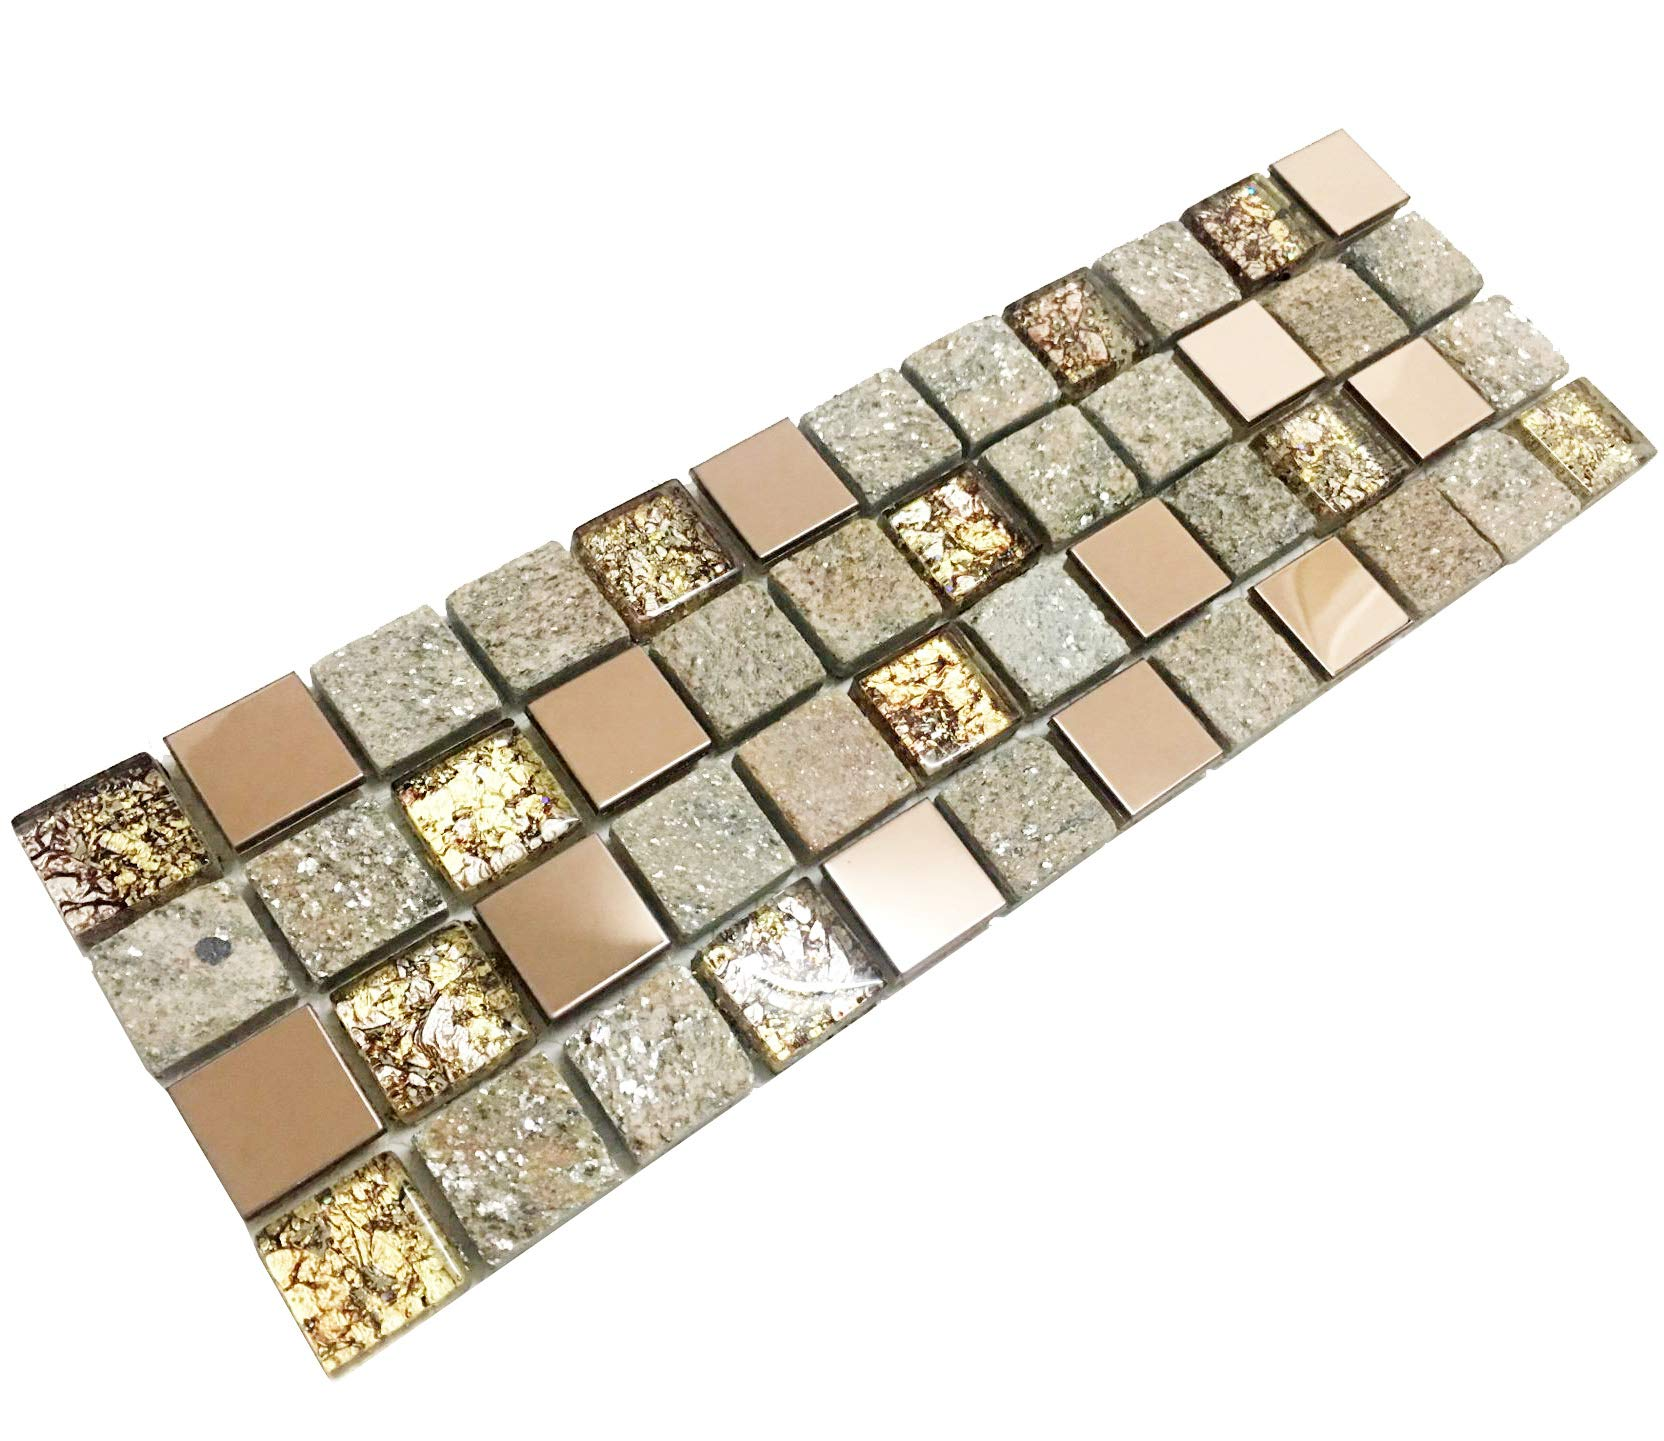 Hominter Tile Sample 3 x 12 Inches: Rose Gold Stainless Steel Tile, Glass Backsplash Tile for Kitchen and Bathroom, Gray Stone Mosaic Wall Tiles Ox022